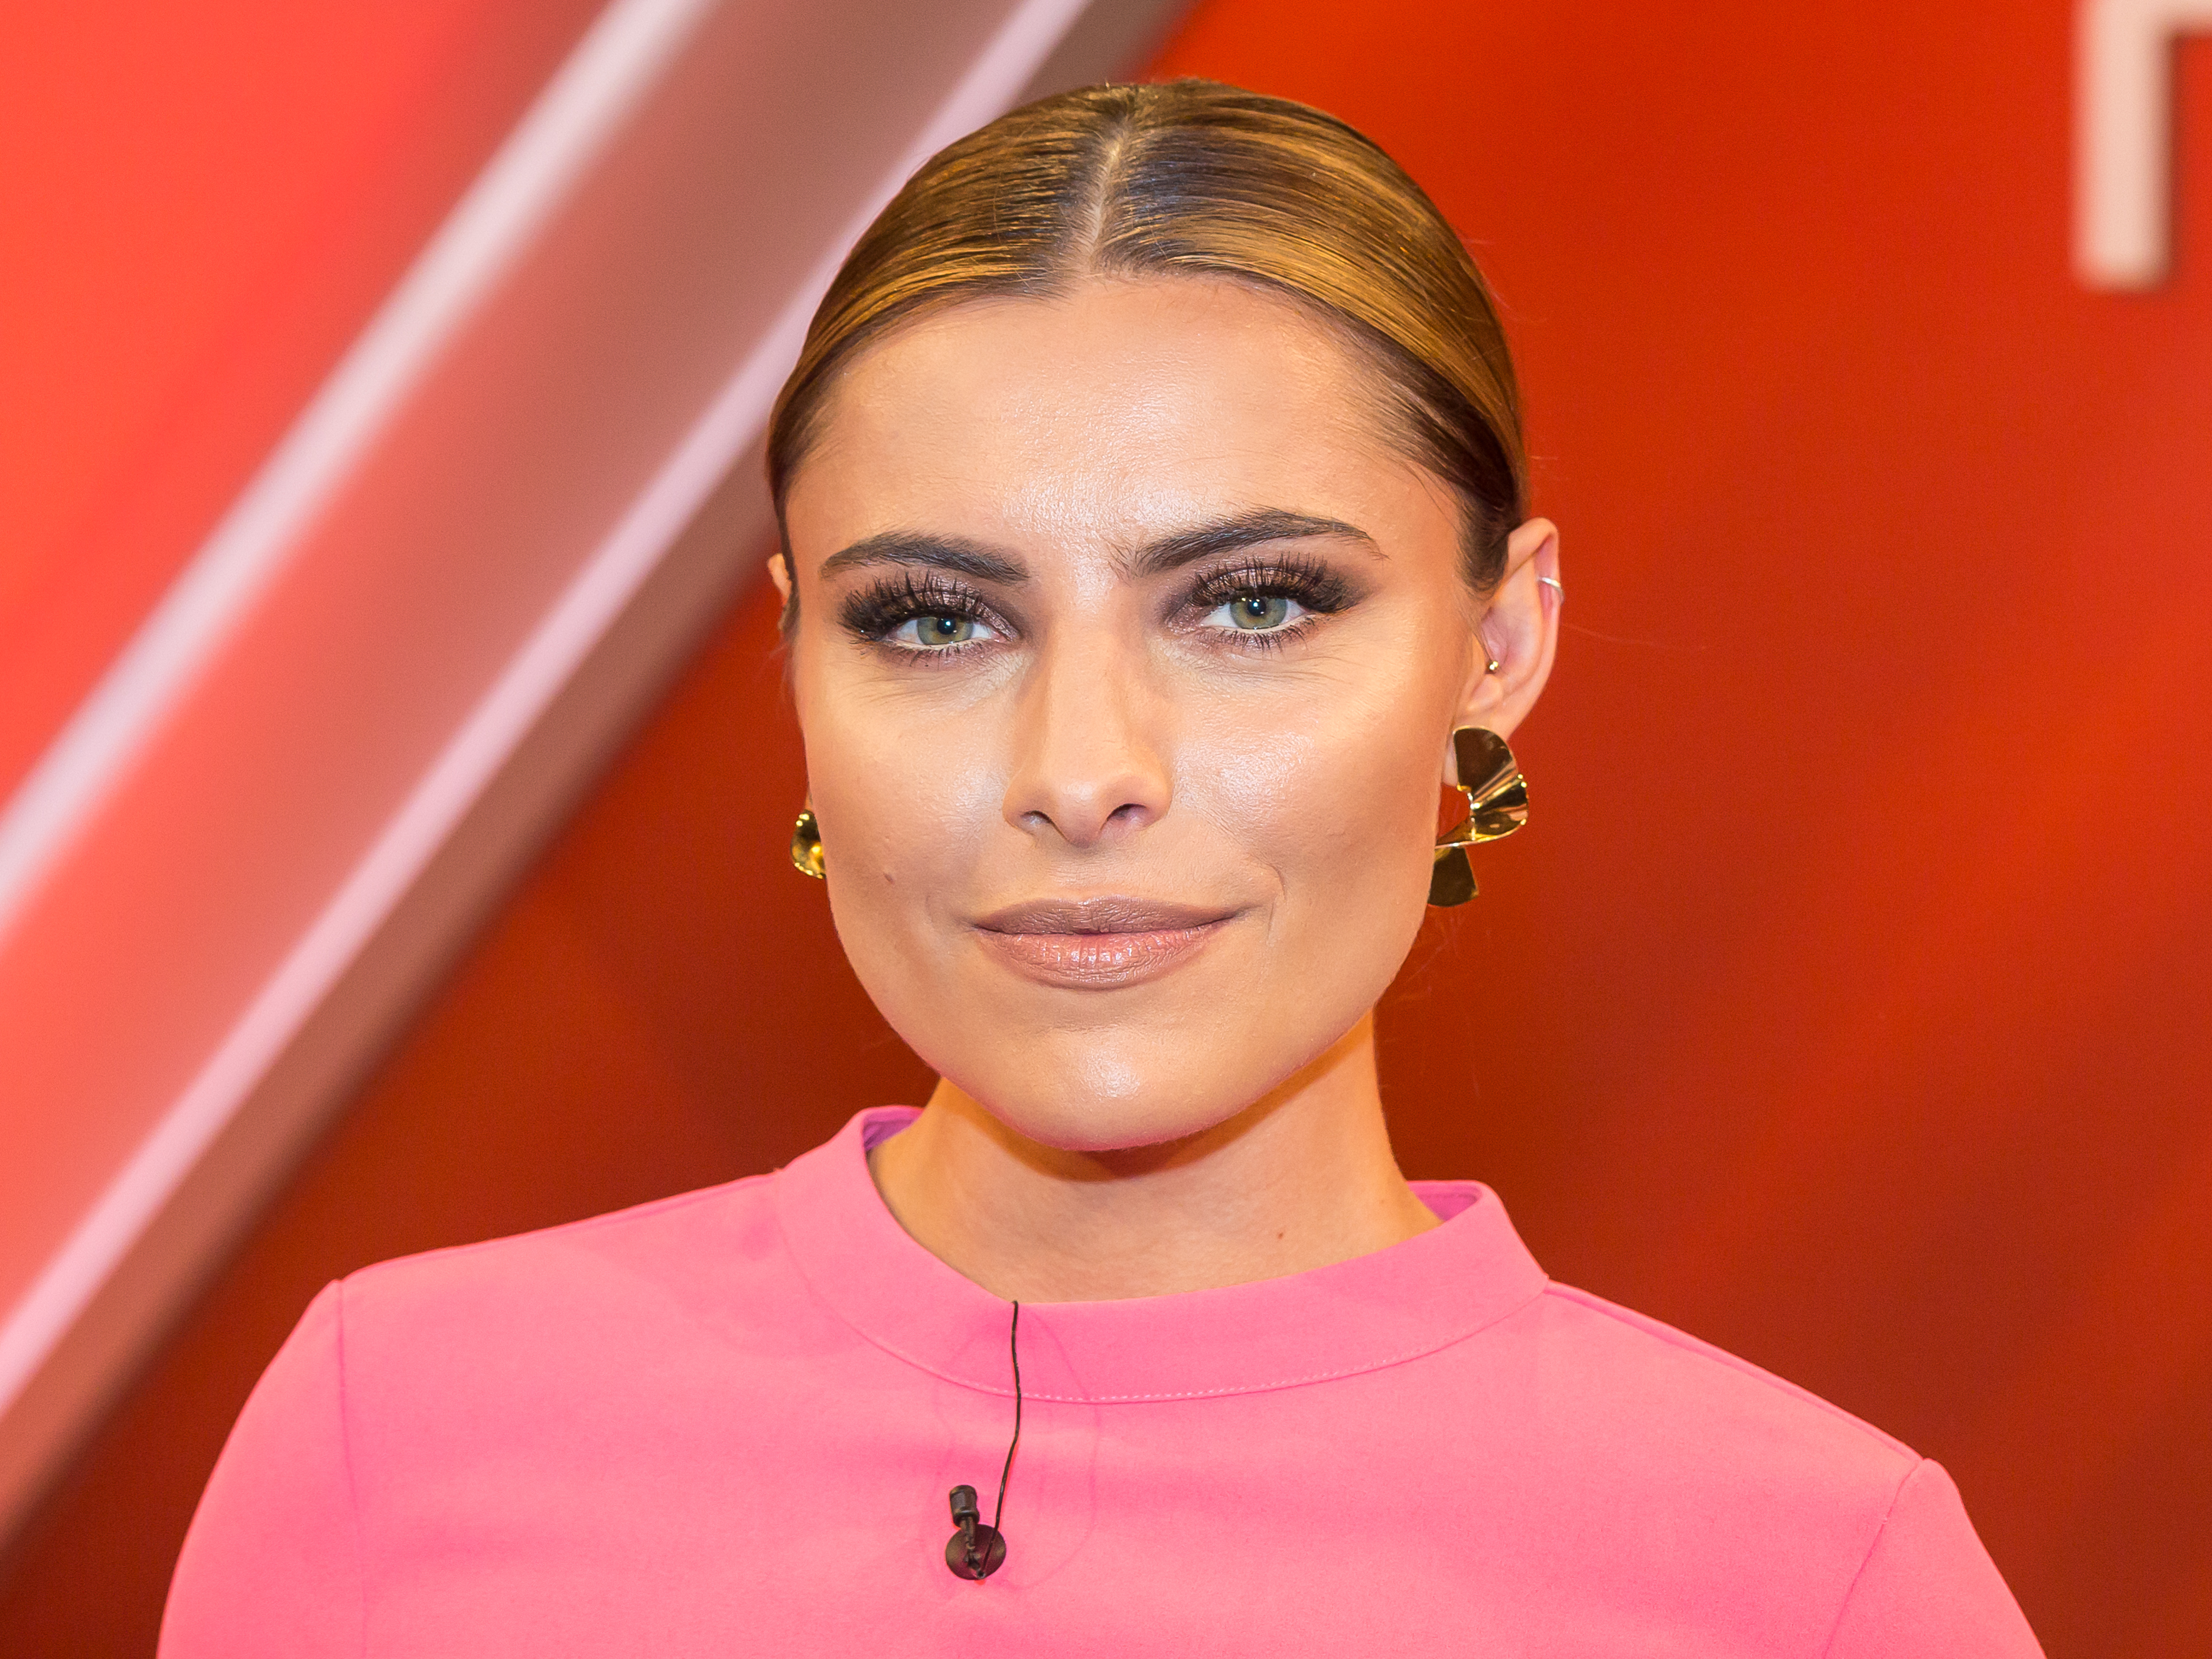 The 29-year old daughter of father André Vetters and mother Simone Thomalla Sophia Thomalla in 2019 photo. Sophia Thomalla earned a  million dollar salary - leaving the net worth at 1.1 million in 2019